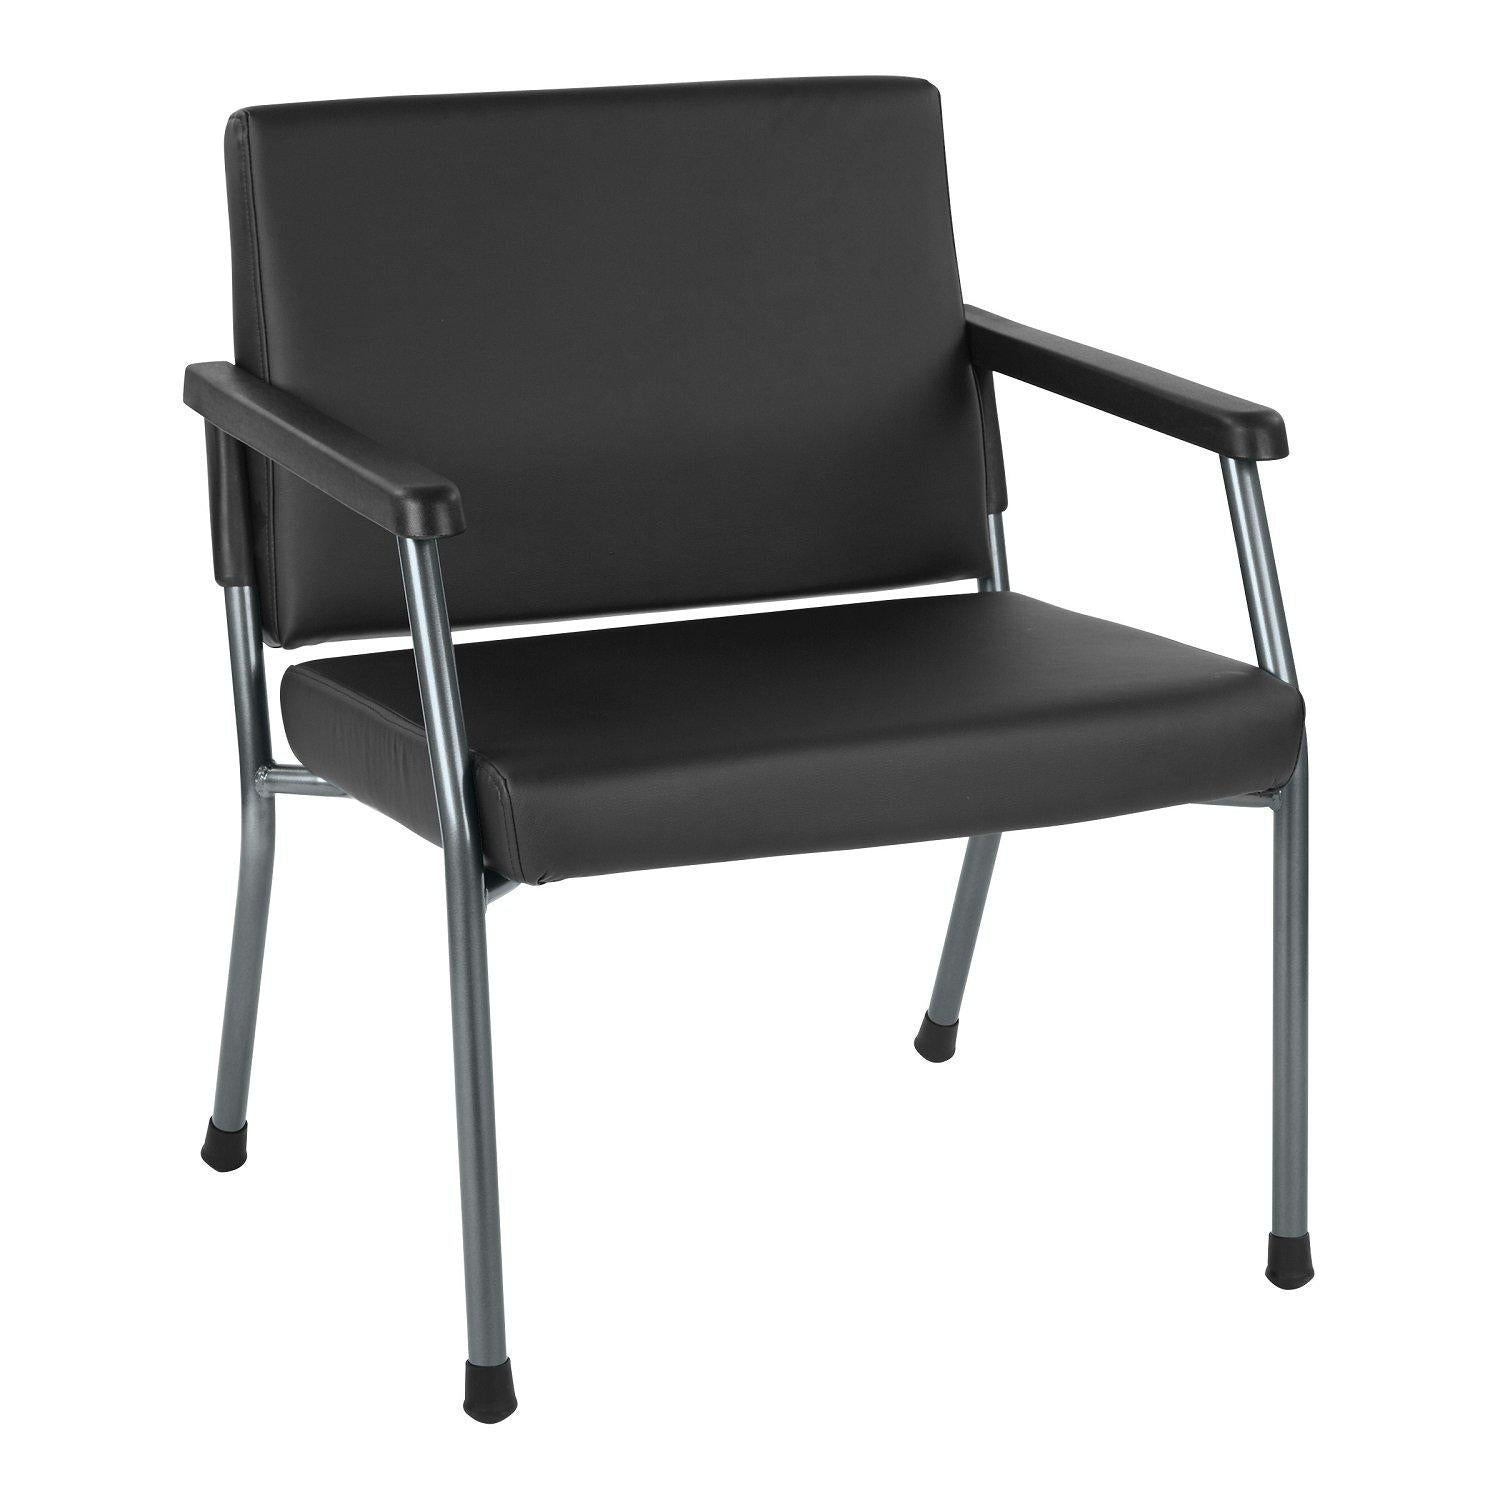 Bariatric Big & Tall Chair with Healthcare Vinyl Upholstery, 400 lb Weight Capacity